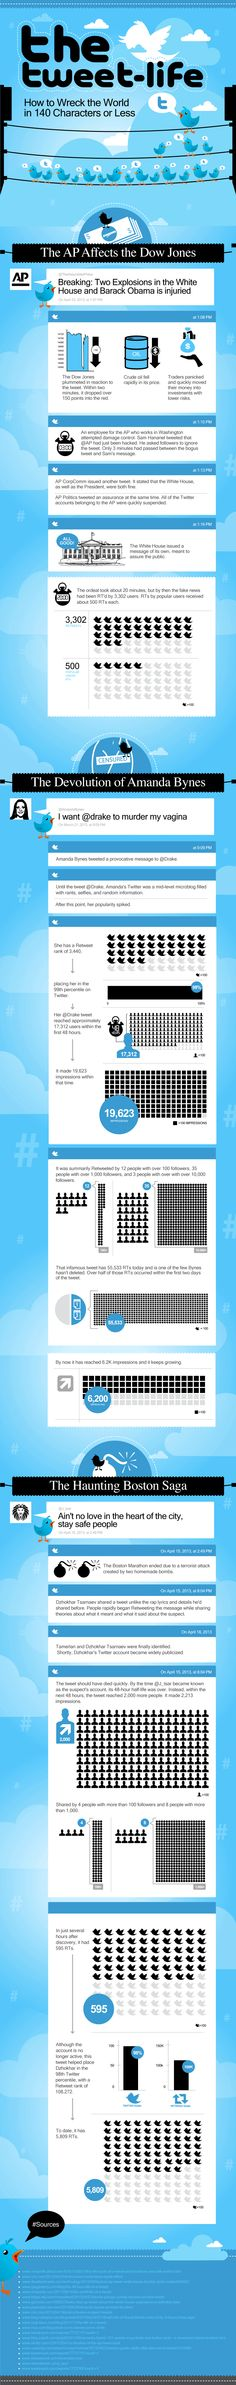 The Tweet Life – How To Wreck The World In 140 Characters (Or Less) [INFOGRAPHIC]